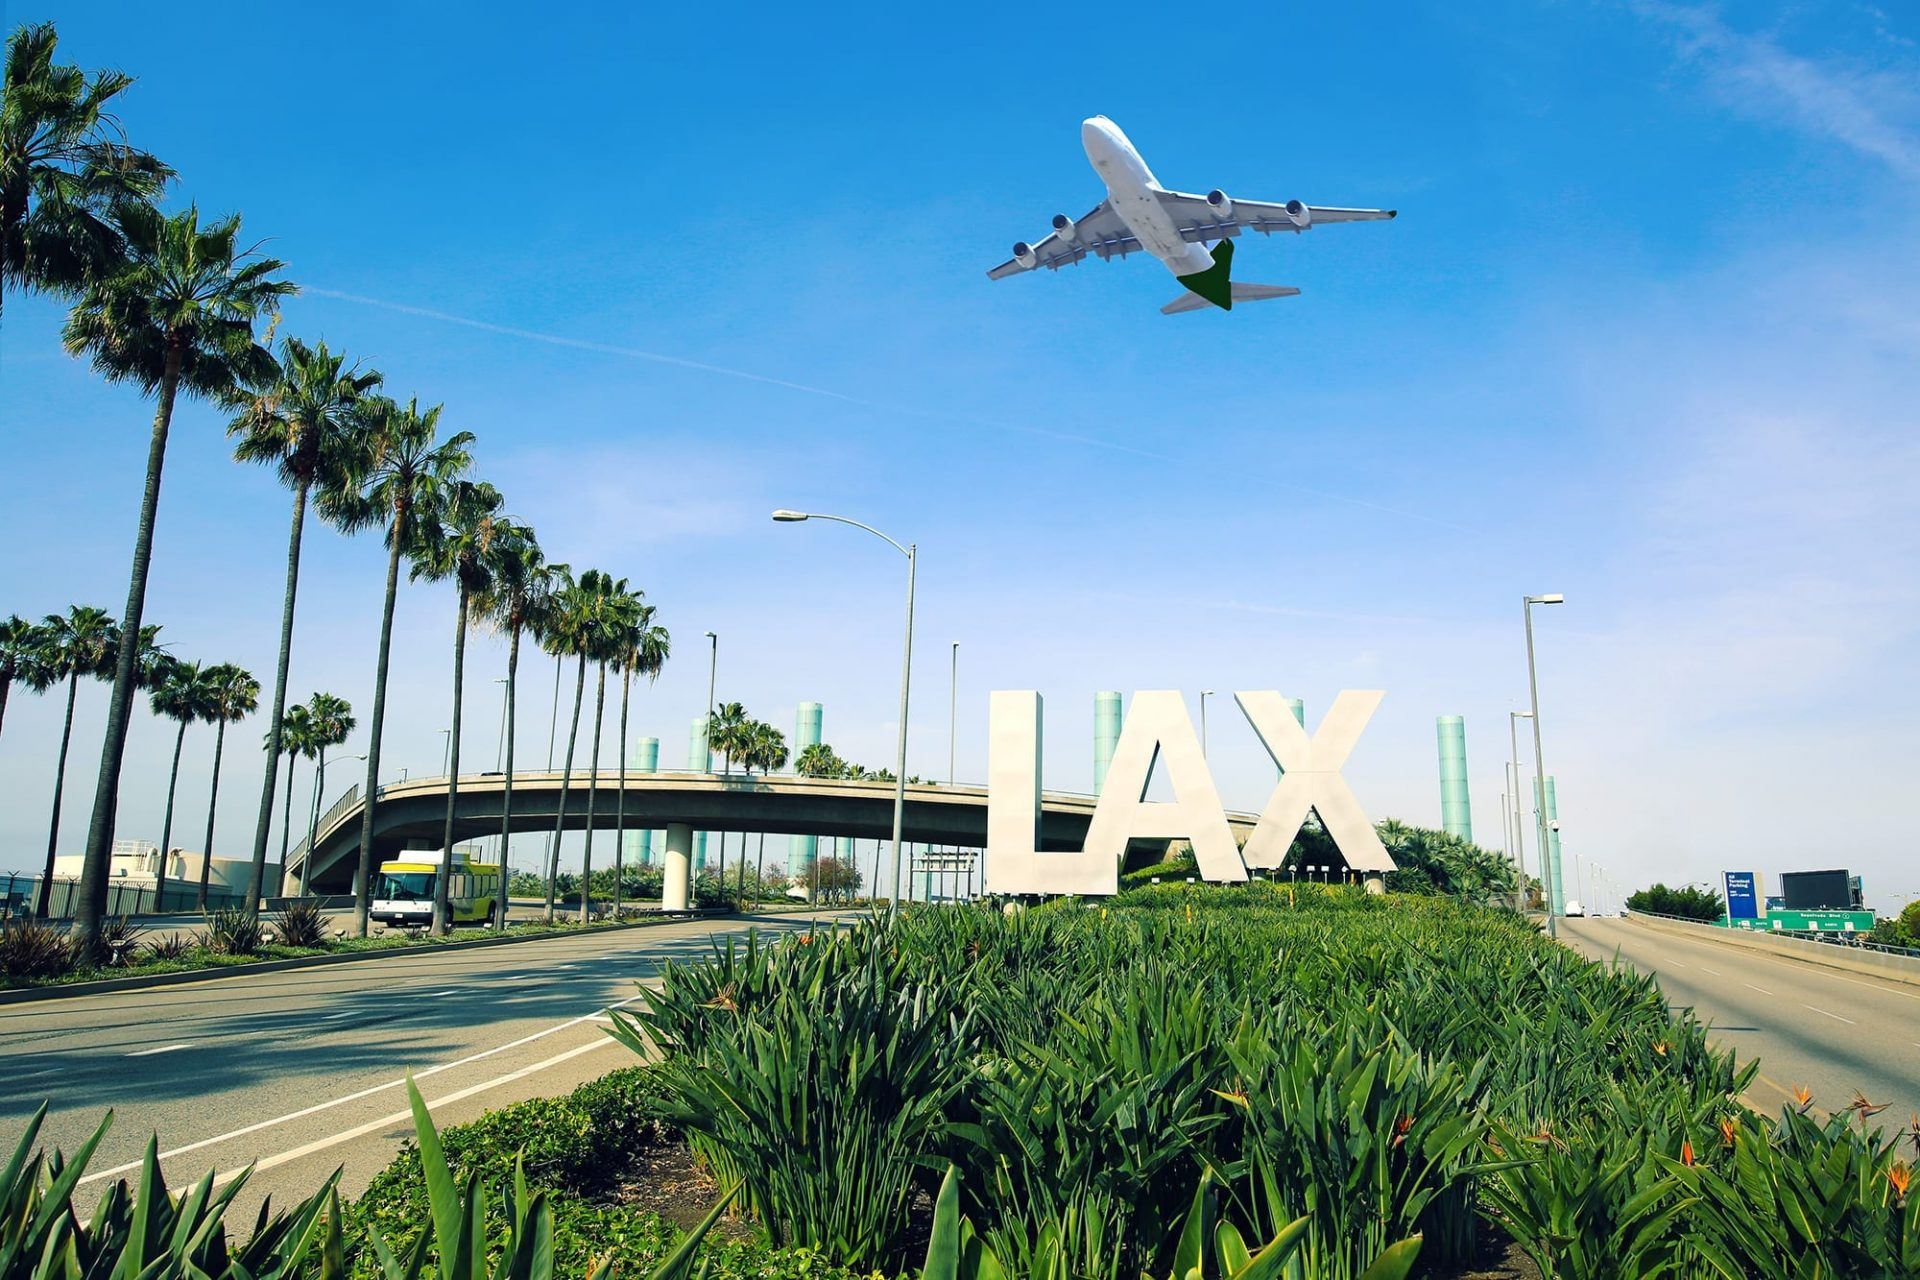 Airports: Upgrades at LAX, LaGuardia; OAK lane changes, ATL goes bio + more